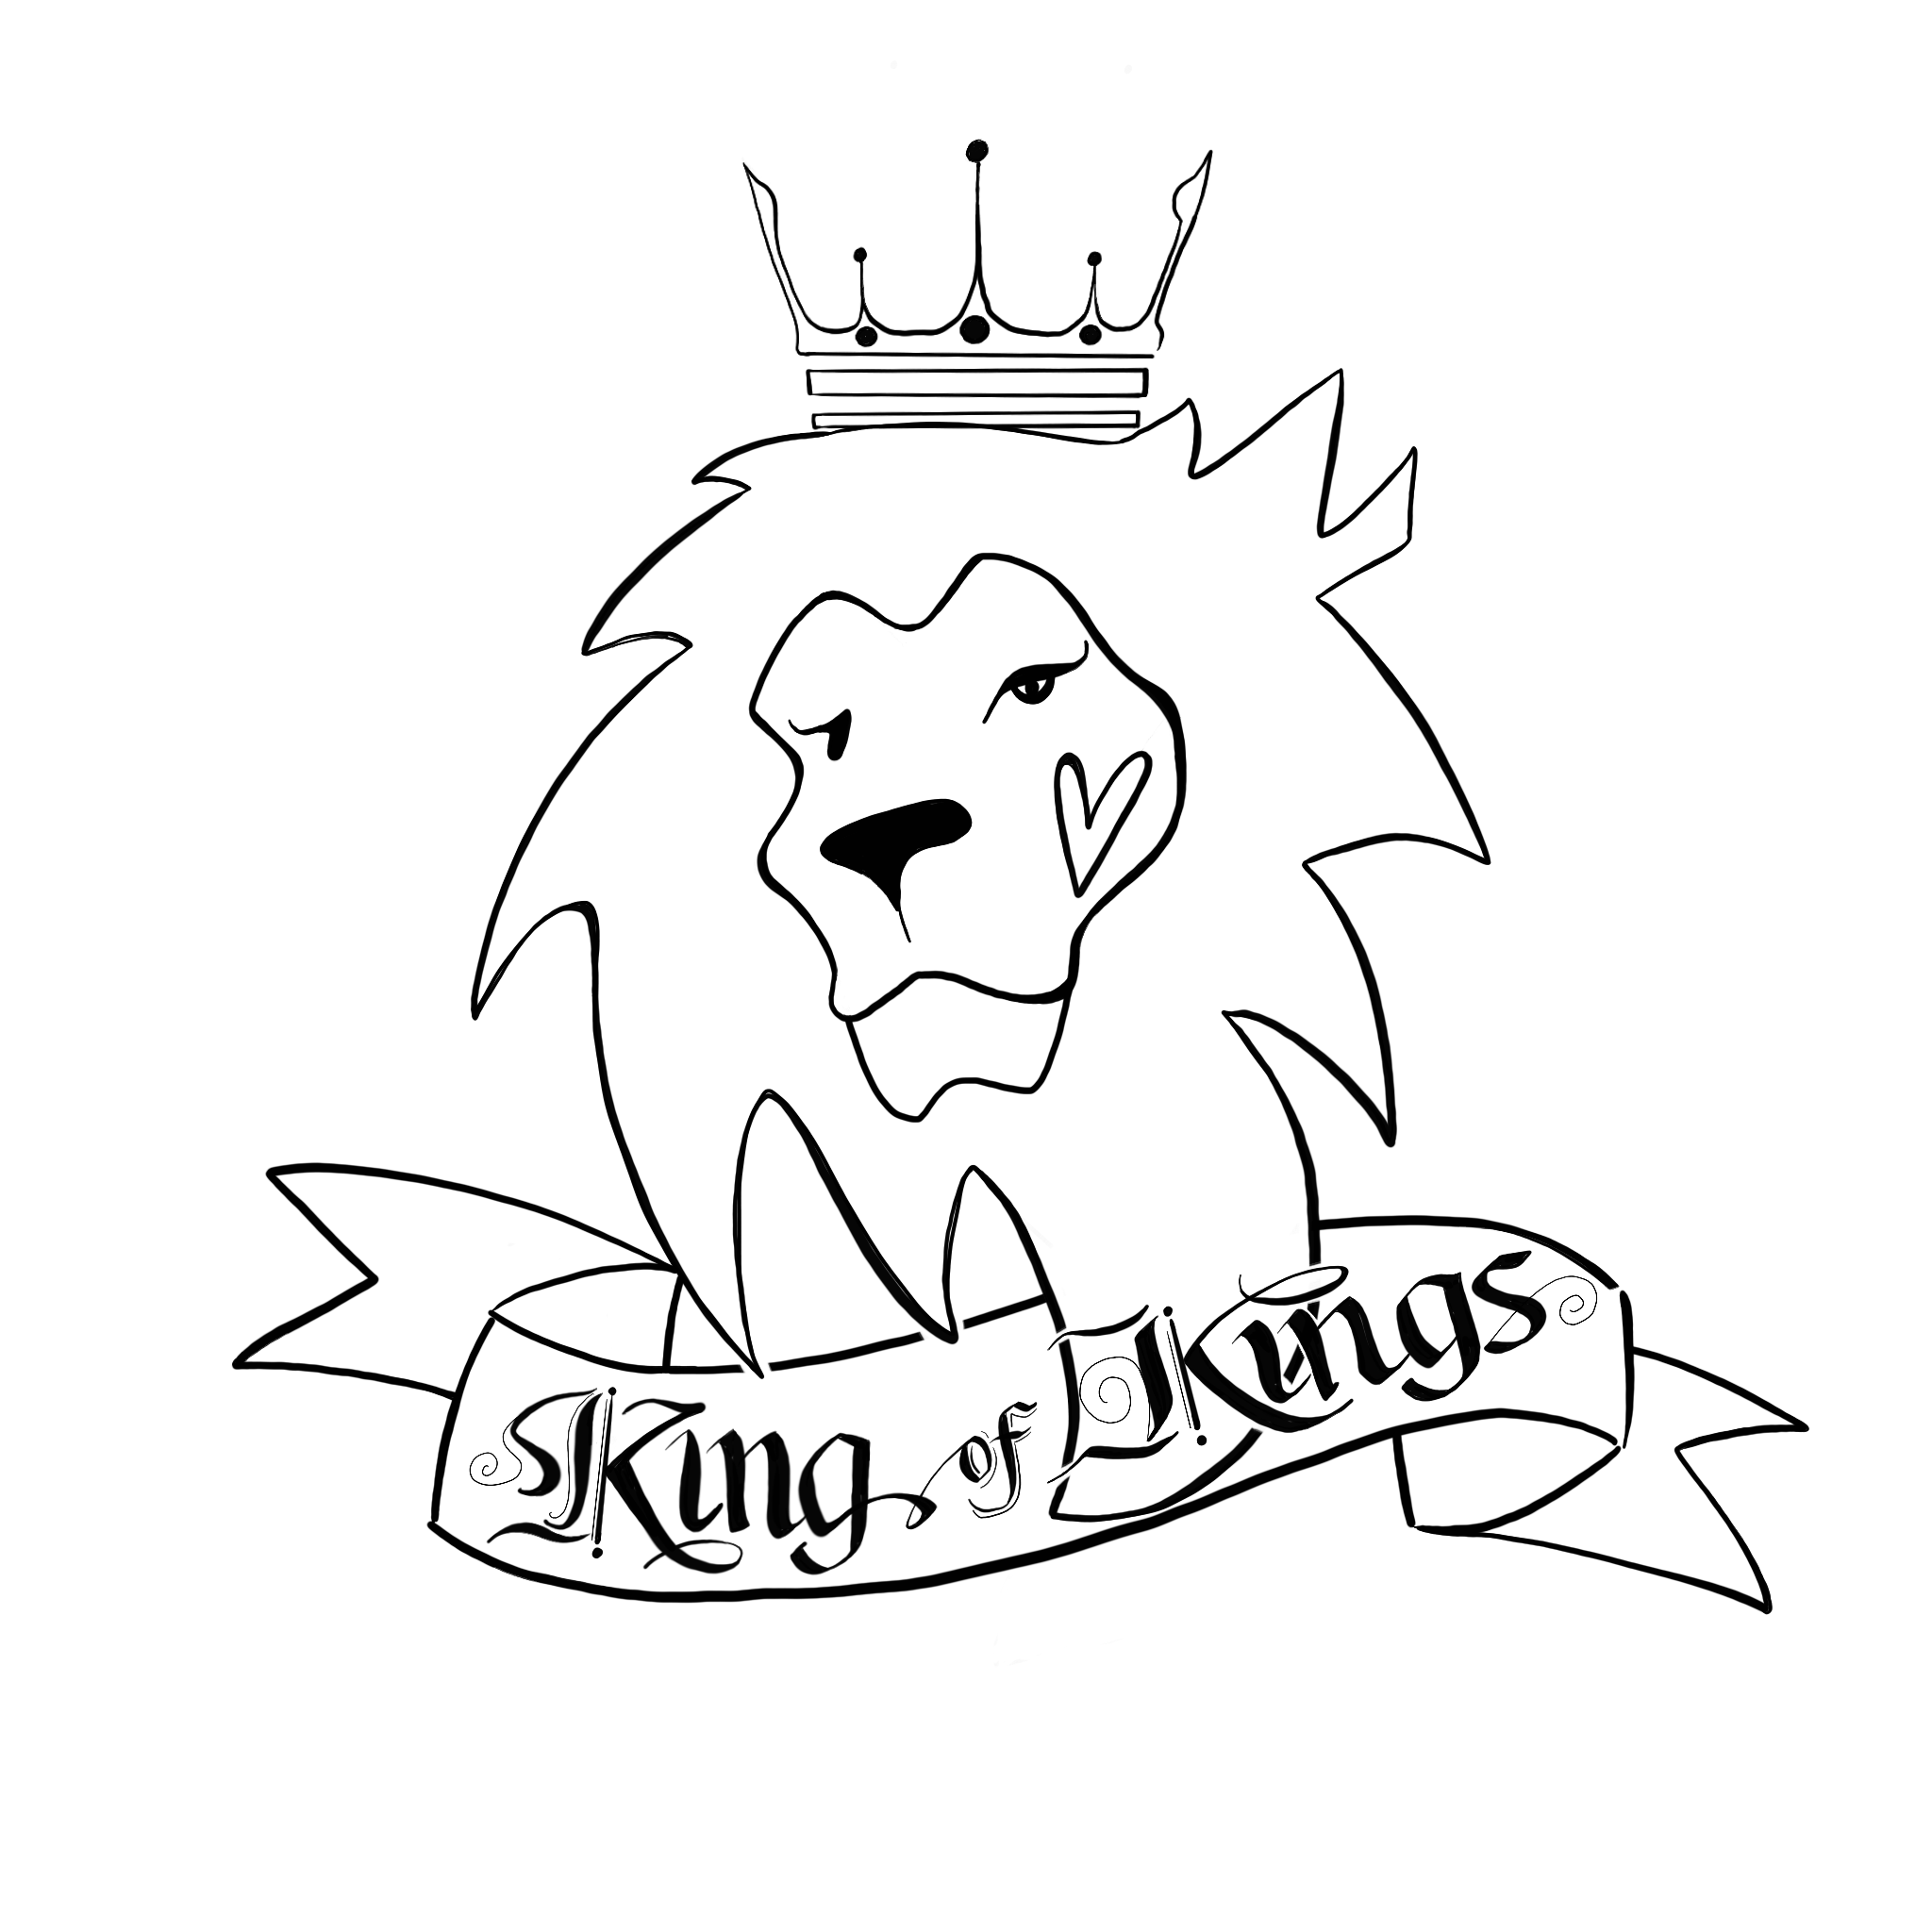 image royalty free download Doodle